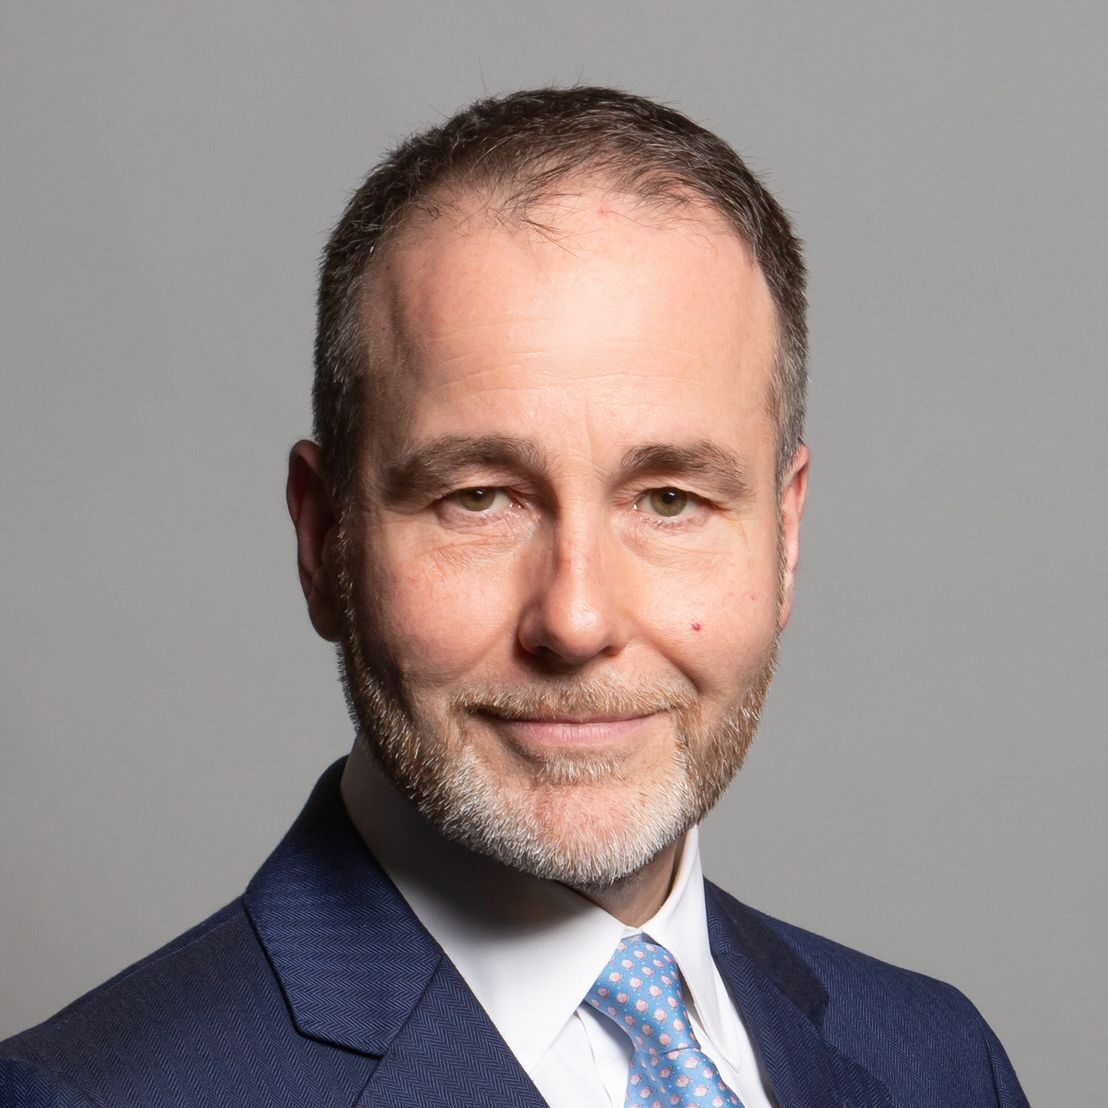 The Rt Hon Christopher Pincher MP